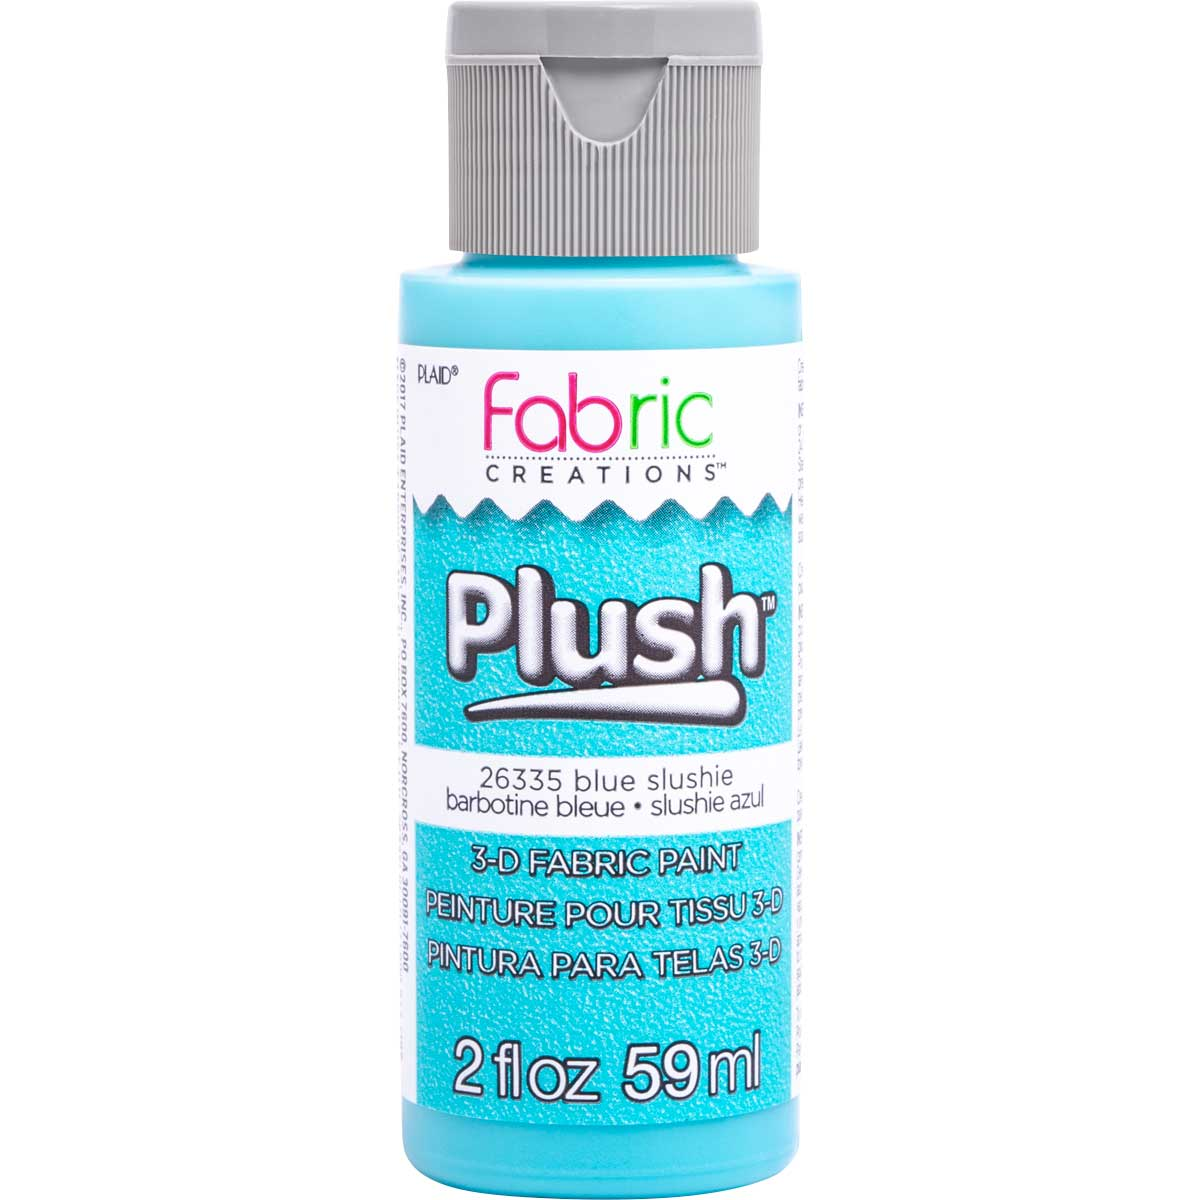 Fabric Creations™ Plush™ 3-D Fabric Paints - Blue Slushie, 2 oz. - 26335